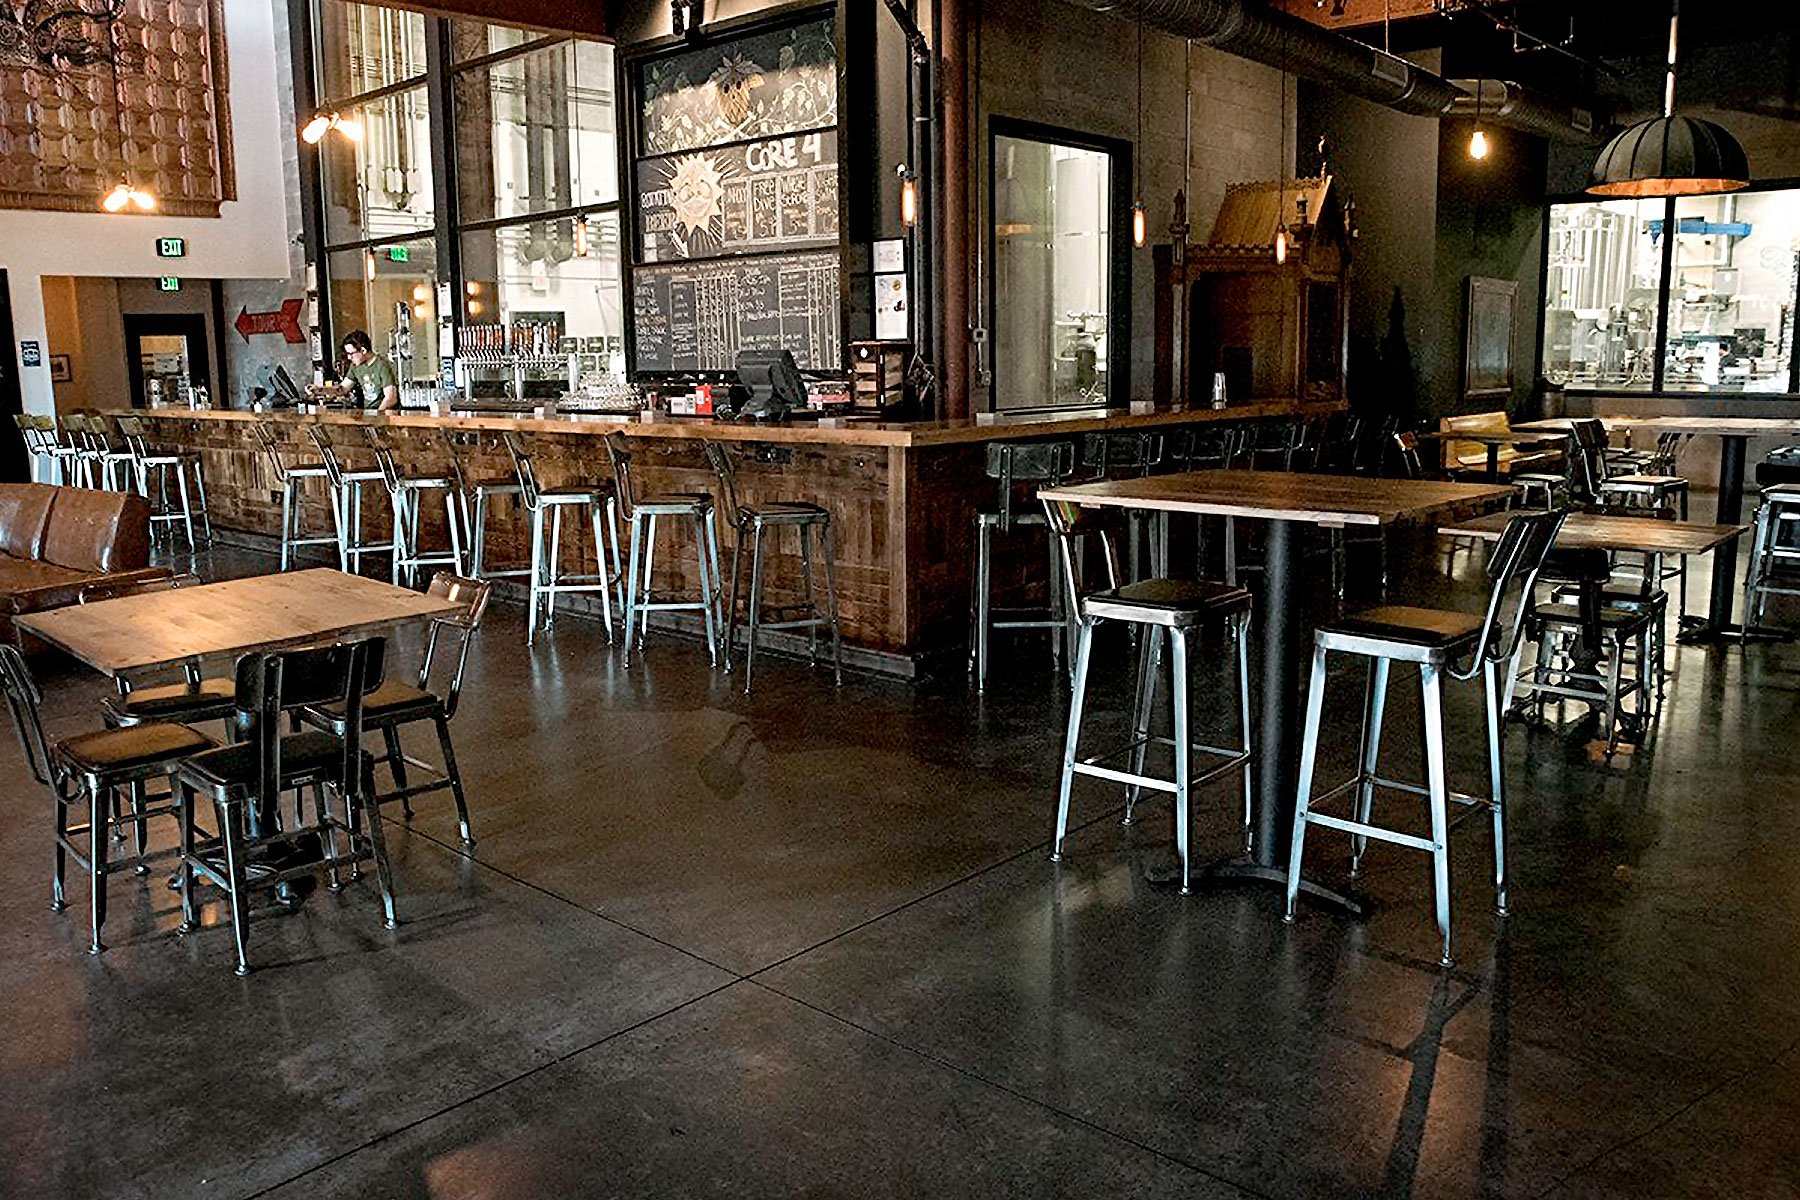 Inside the taproom at Coppertail Brewing Co. in Tampa, Florida